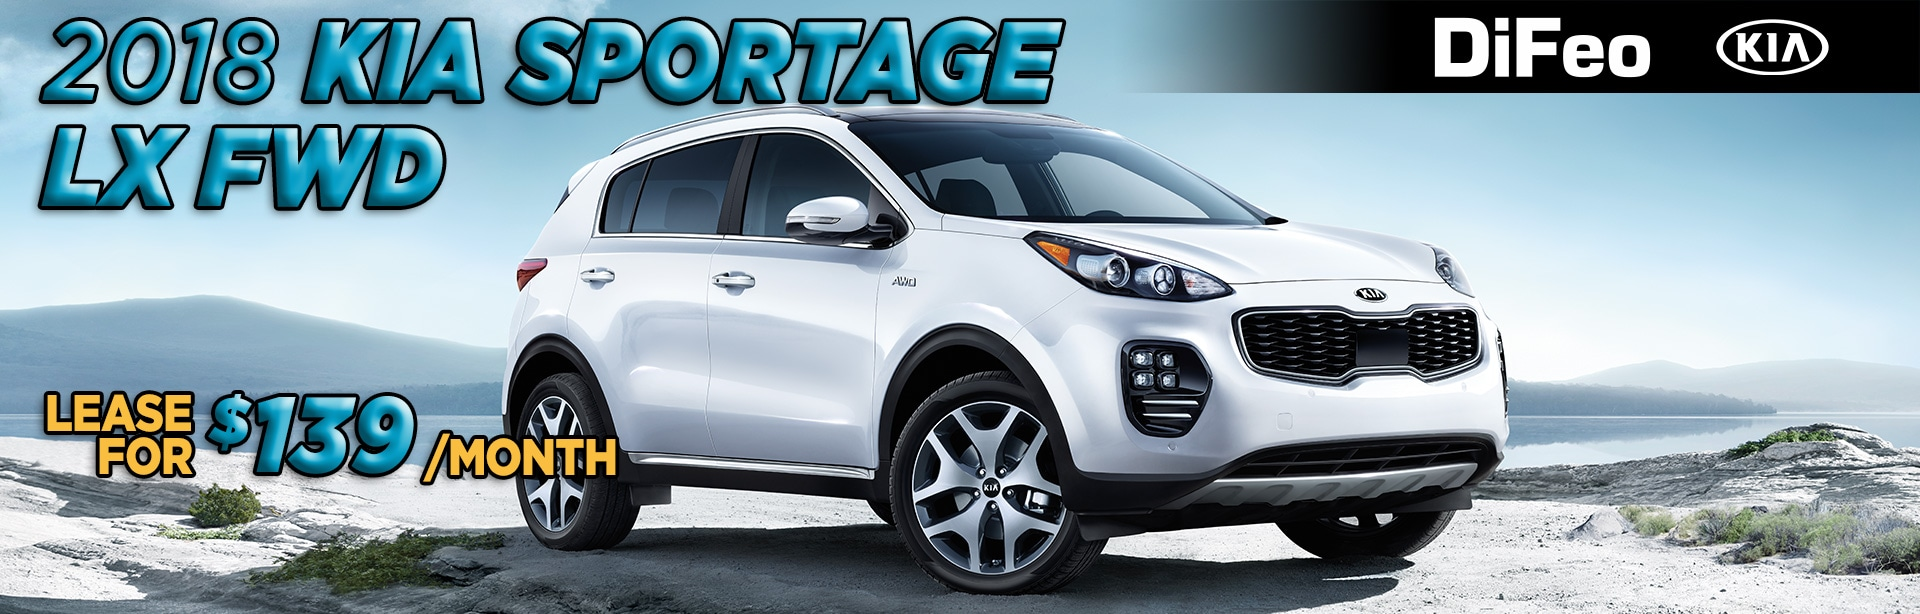 kia specials lease dealership valley simi of offers first in view ca